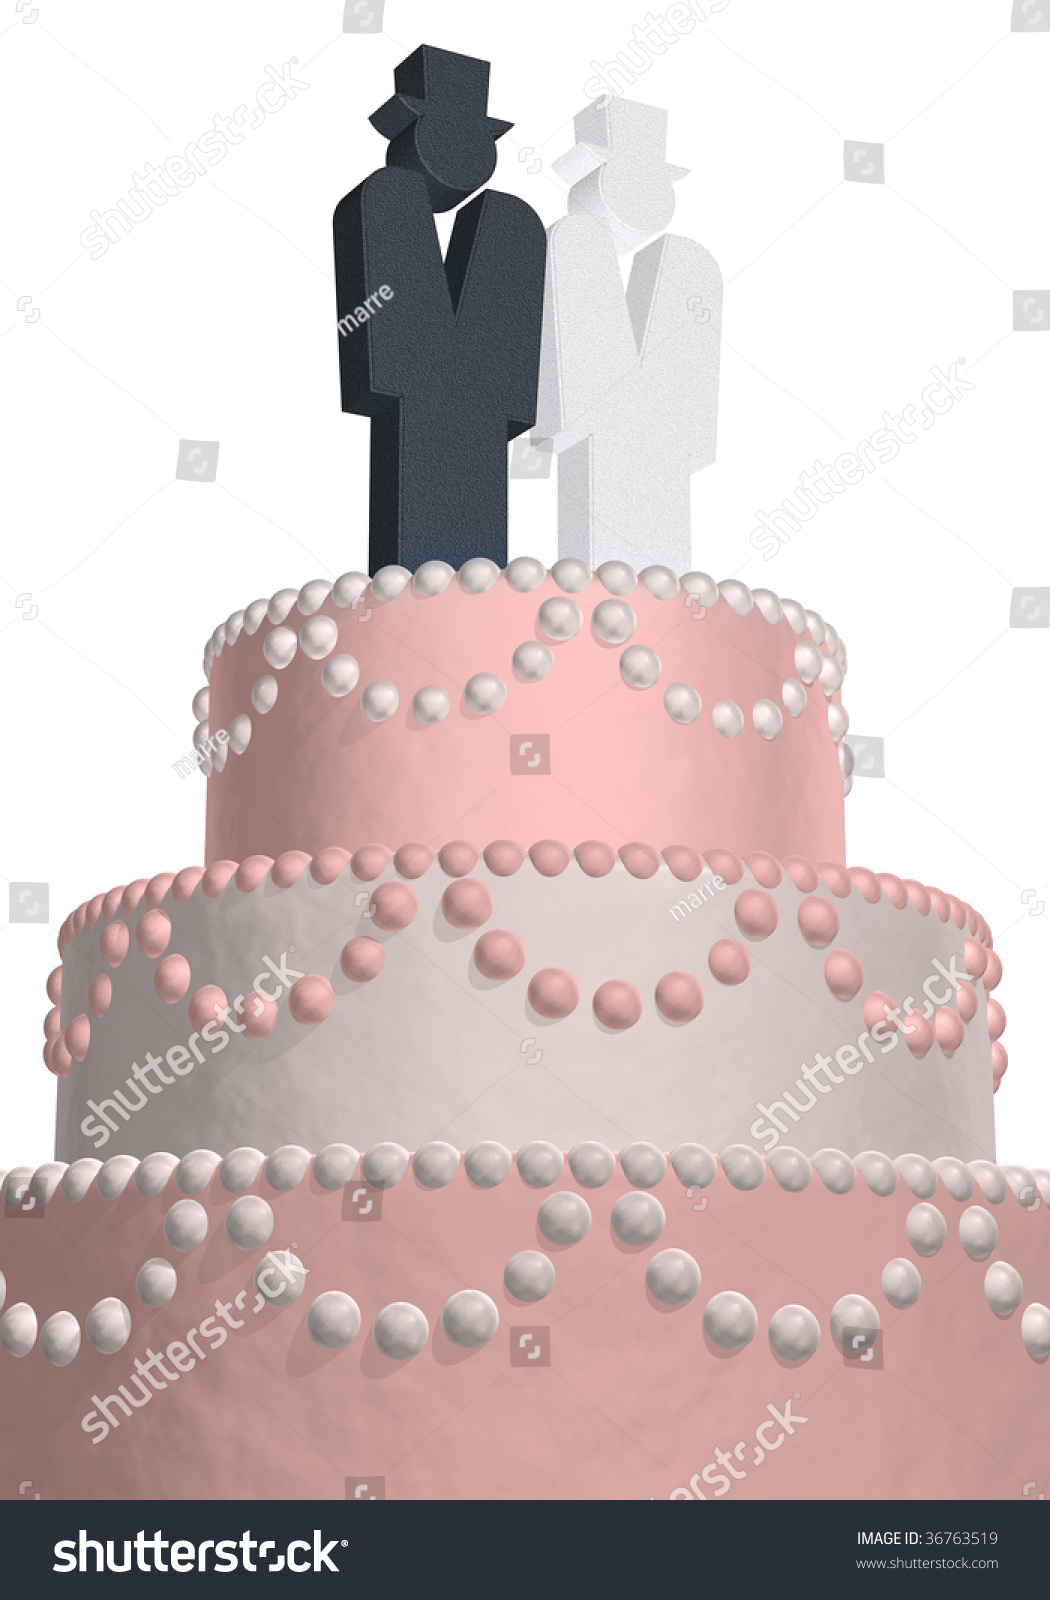 what do wedding cake symbolizes wedding cake with the symbols and stock photo 27049